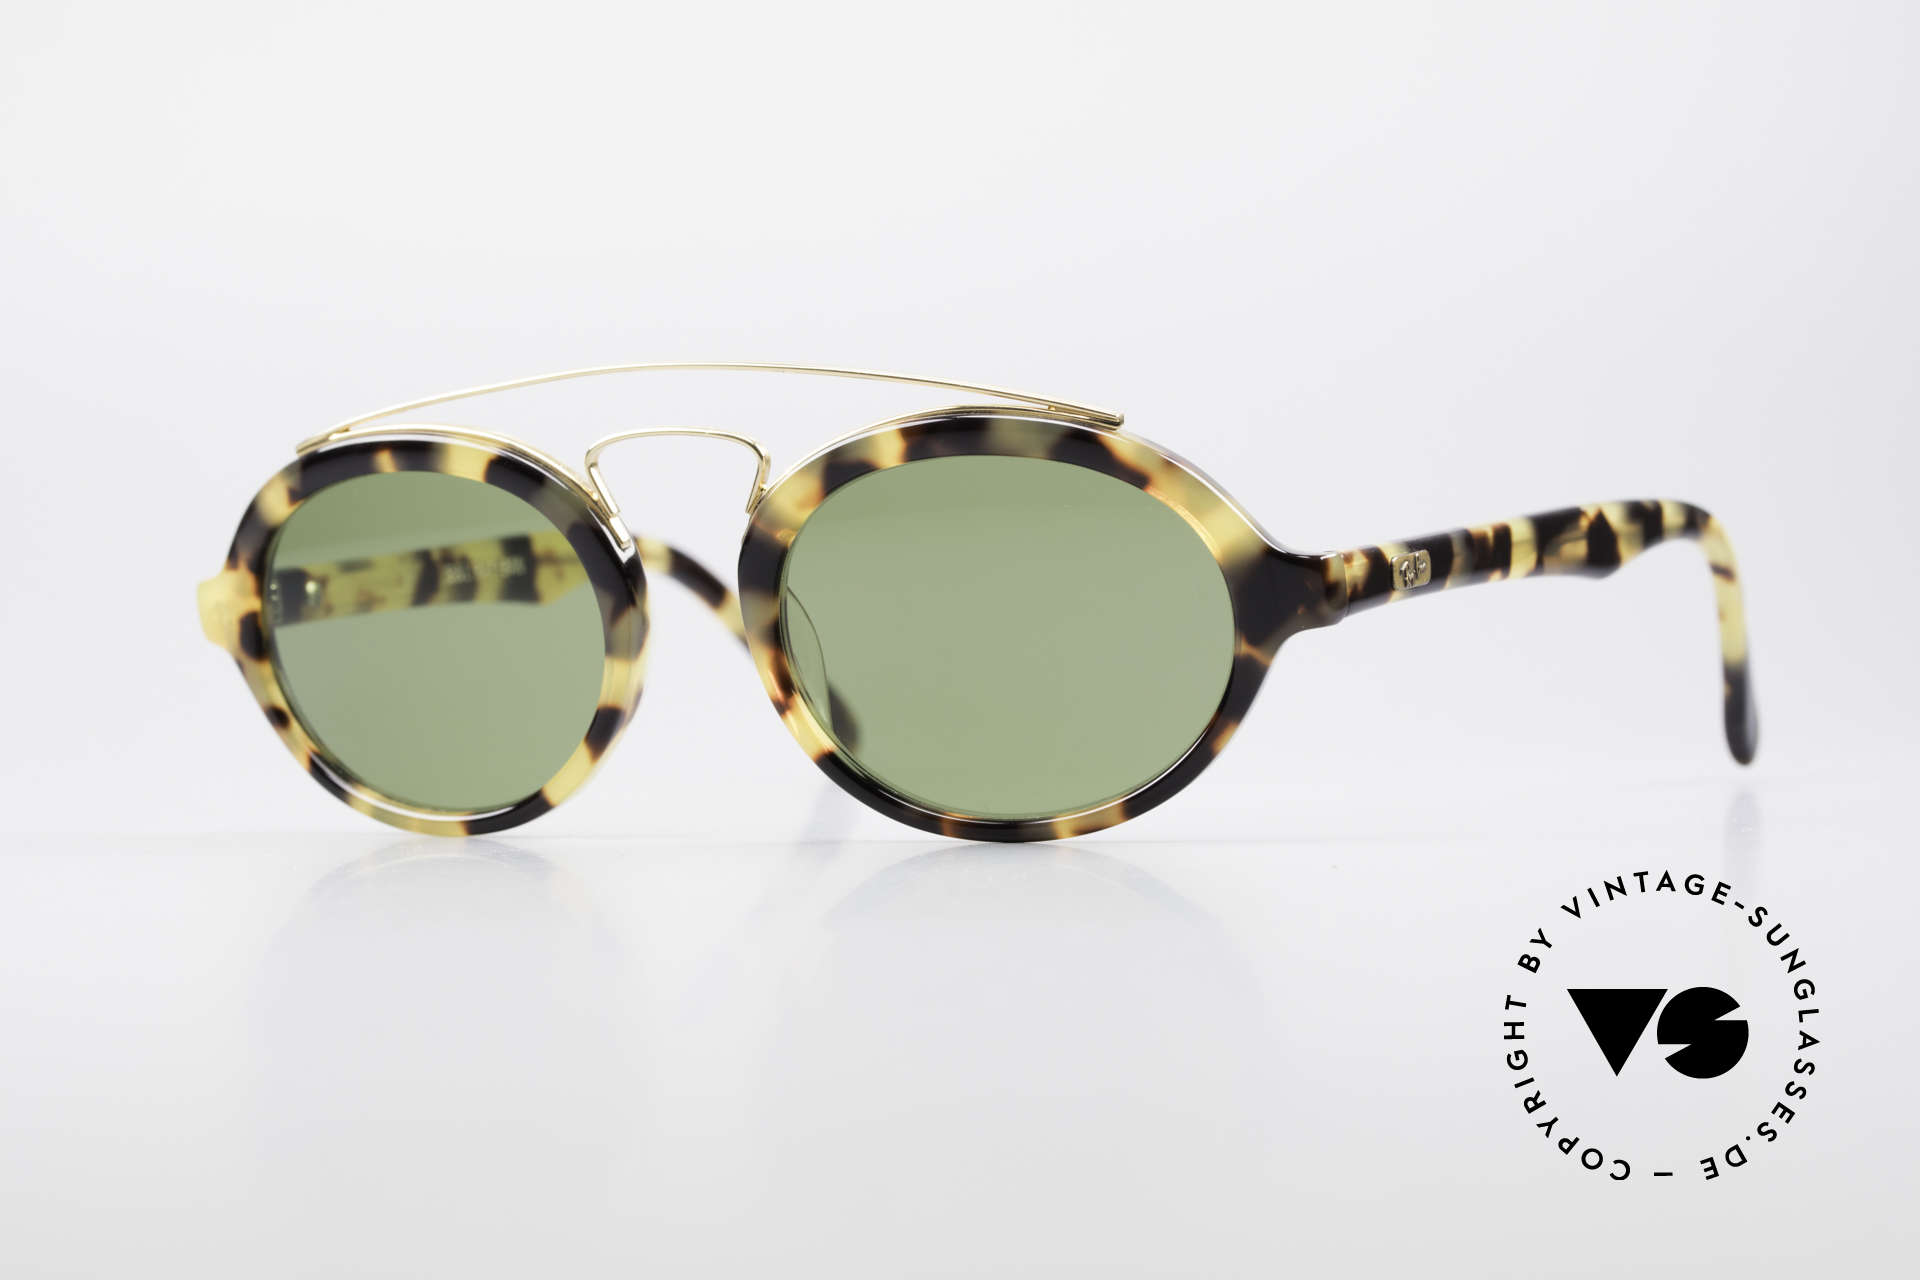 Ray Ban Gatsby Style 6 Old Ray-Ban USA Sunglasses, RAY-BAN GATSBY Style 6 Combo Oval shades, Made for Men and Women